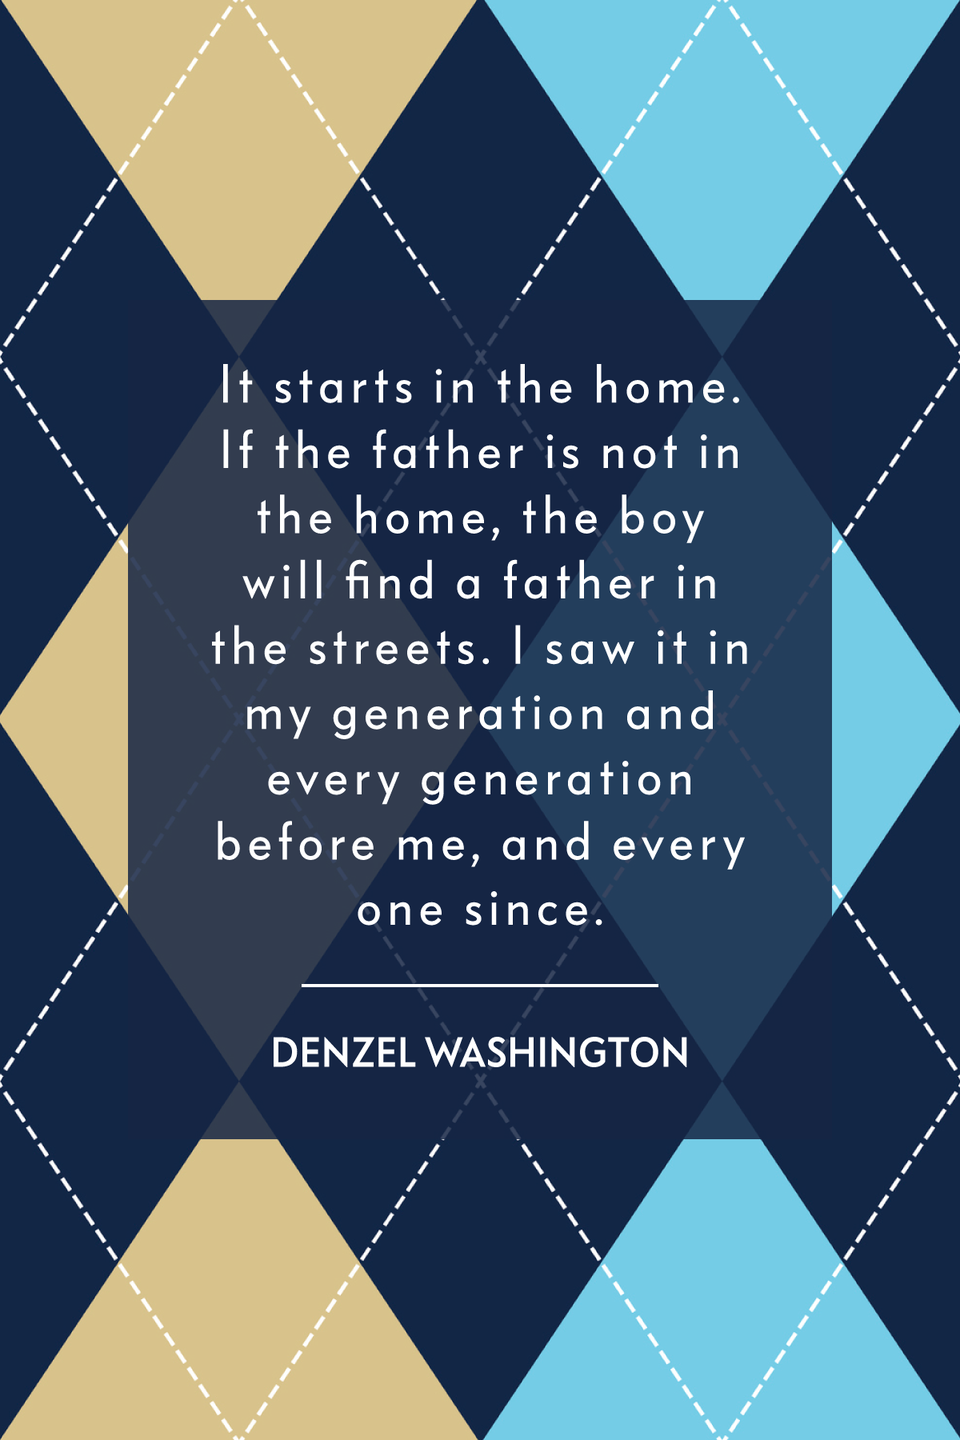 """<p>""""It starts in the home. If the father is not in the home, the boy will find a father in the streets. I saw it in my generation and every generation before me, and every one since,"""" the star of <em>The Equalizer 2</em> told <em><a href=""""https://thegrio.com/2017/11/21/denzel-washington-roman-j-israel/"""" rel=""""nofollow noopener"""" target=""""_blank"""" data-ylk=""""slk:theGrio"""" class=""""link rapid-noclick-resp"""">theGrio</a></em> in 2017.</p>"""